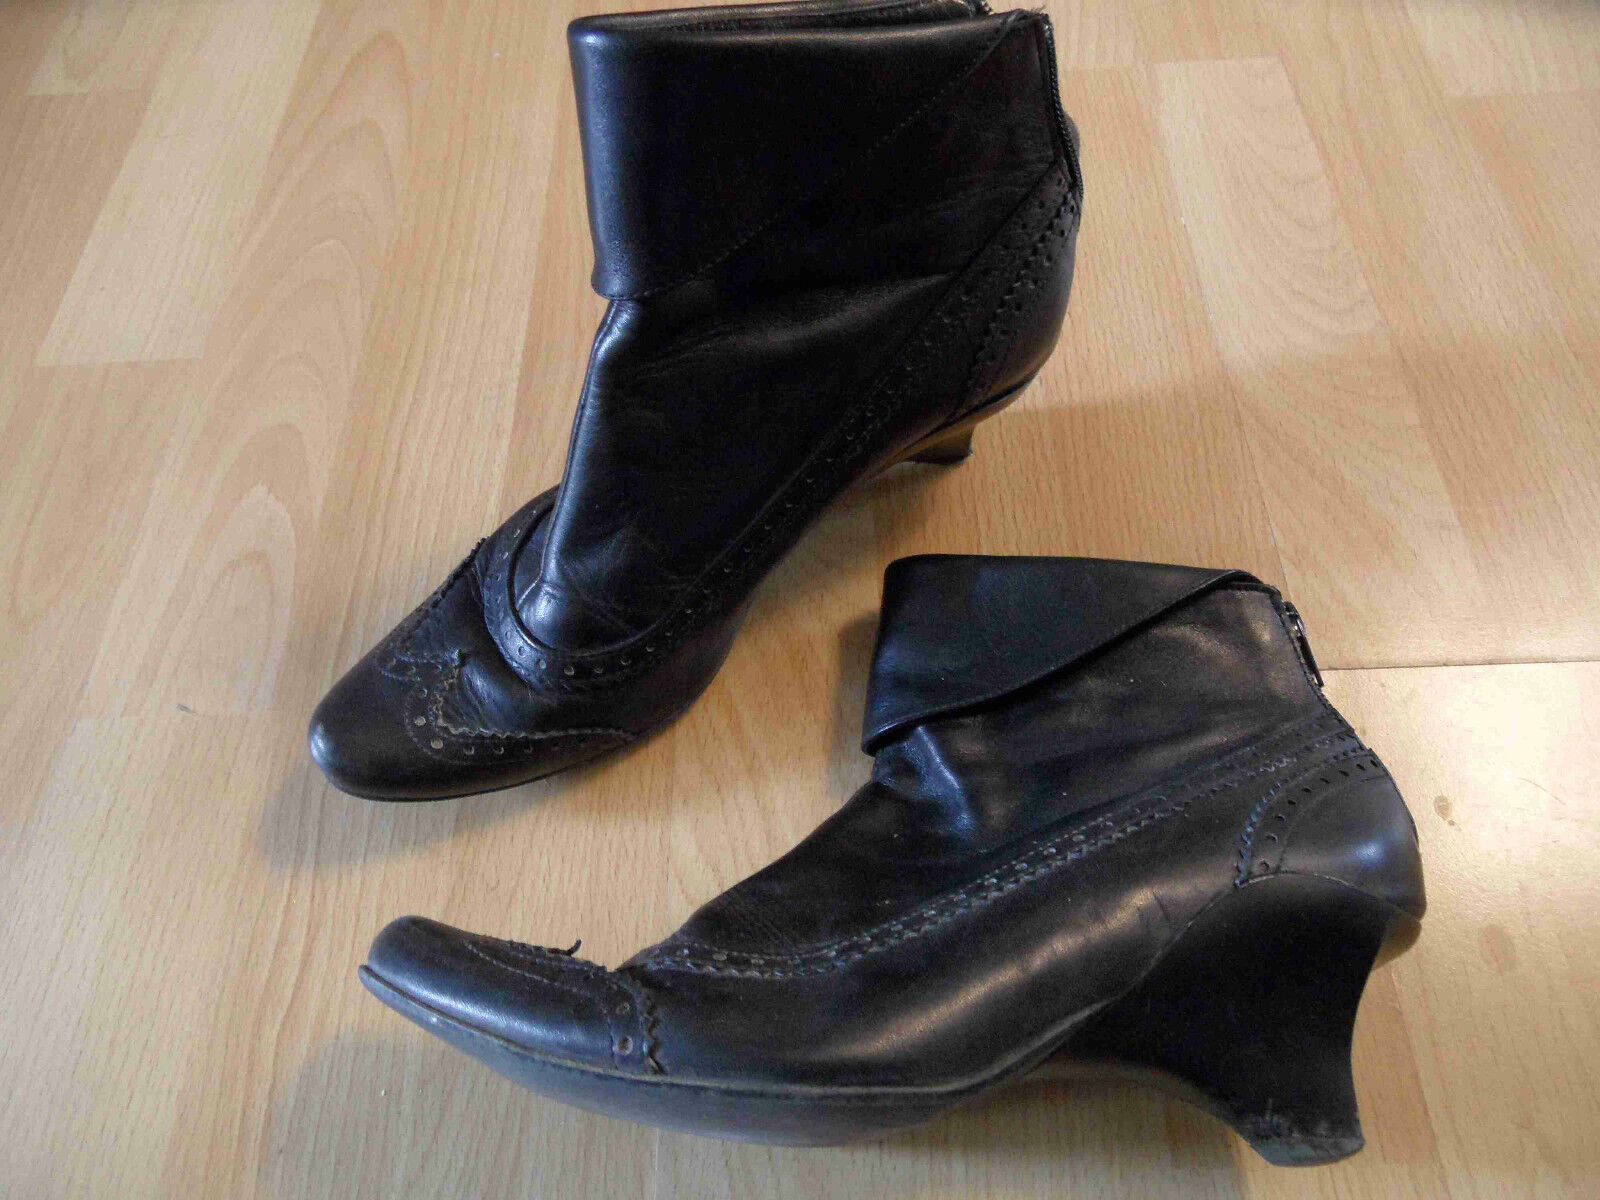 LISA TUCCI stylische Budapester Ankle Stiefel Gr. 37 TOP ZC616